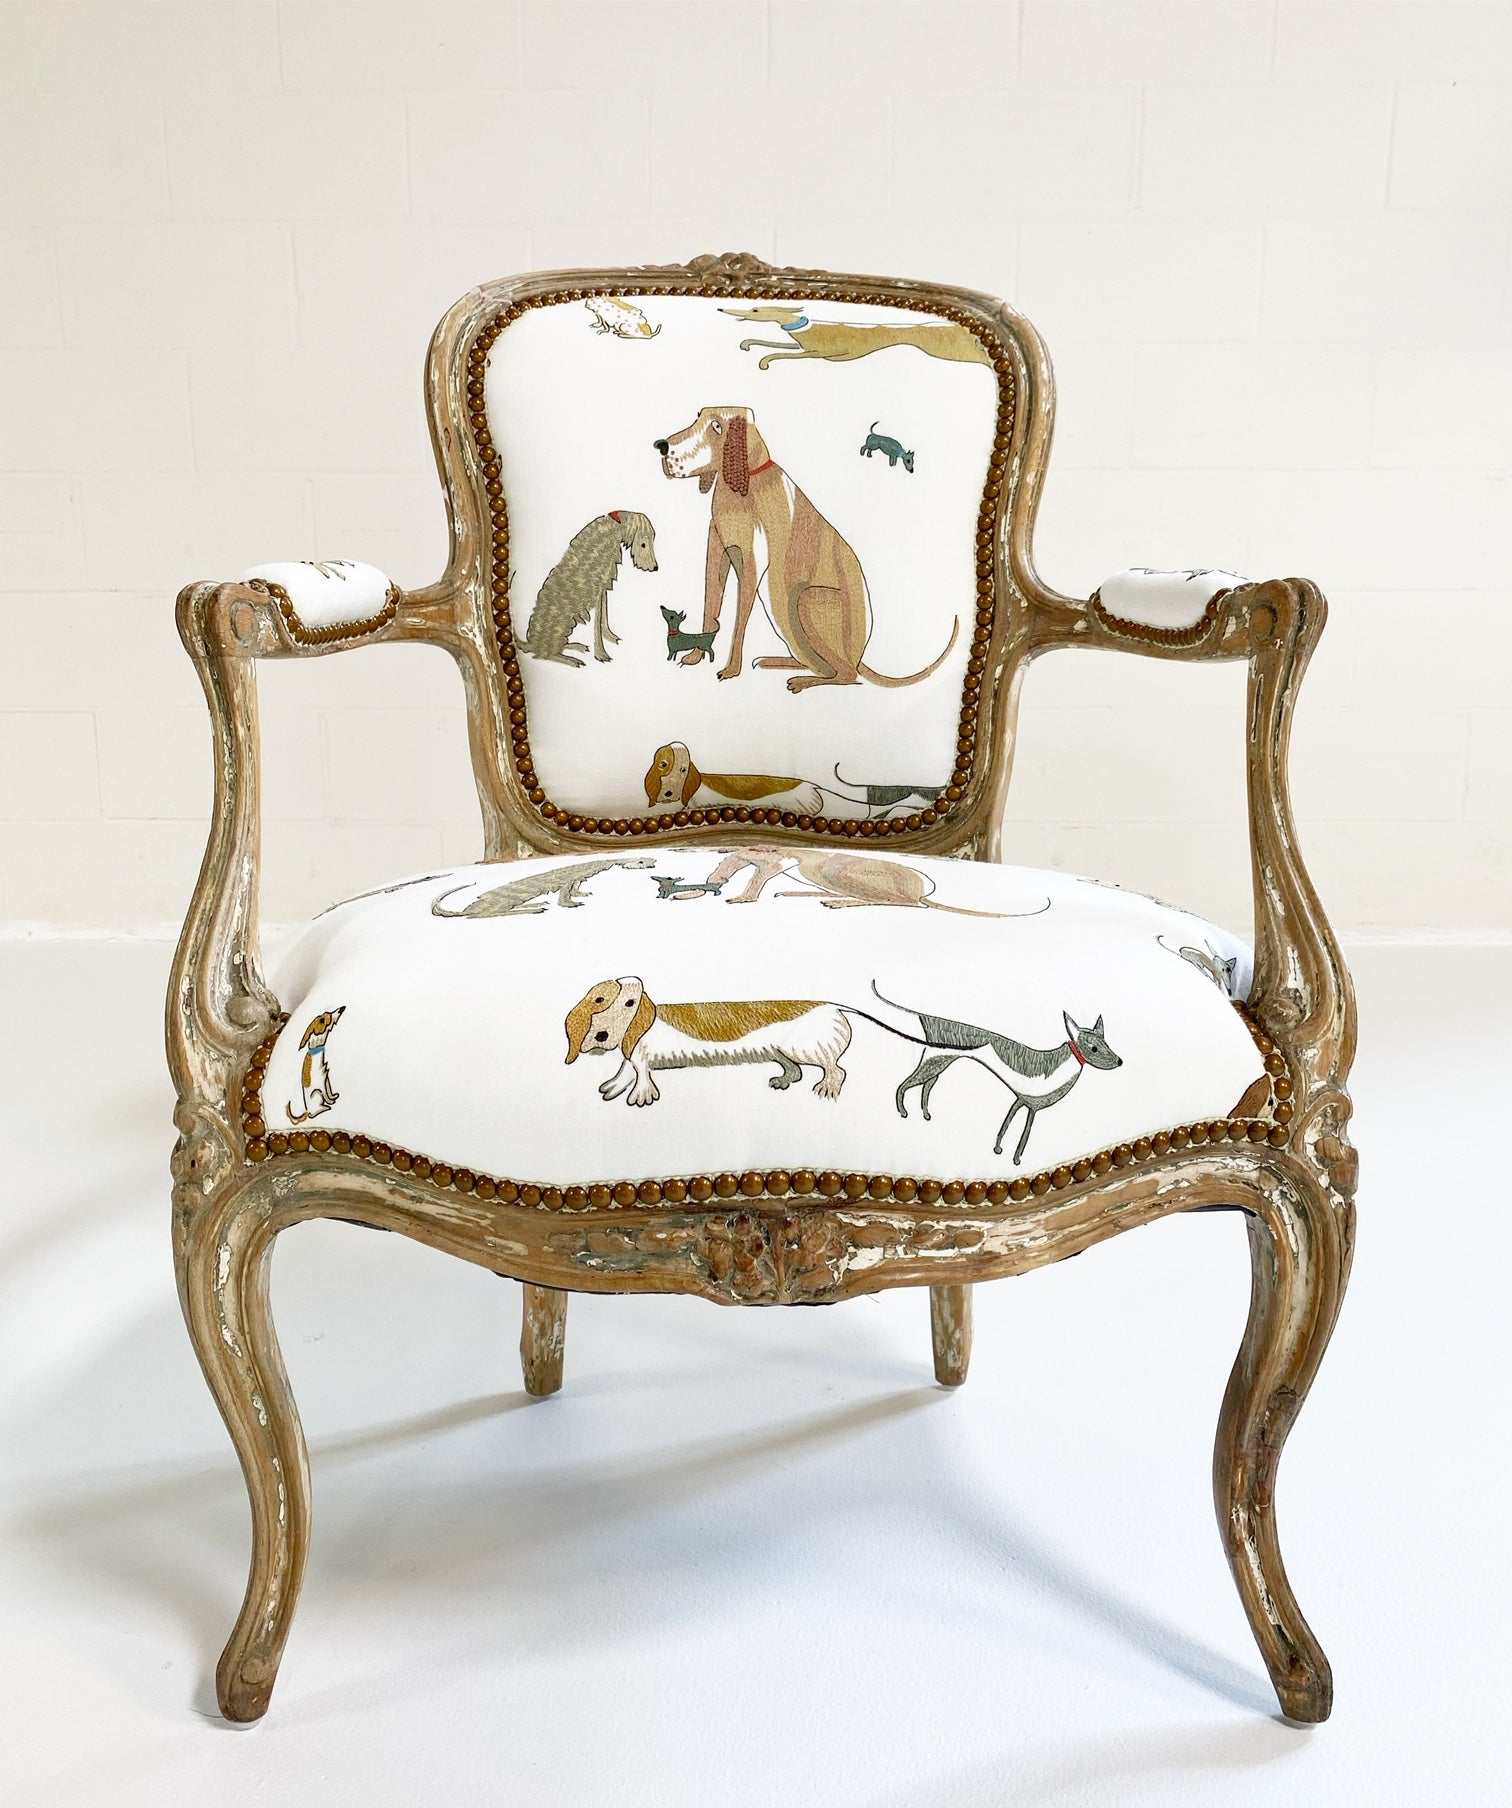 18th c. Louis XV Fauteuil Chair in Chelsea Textiles 'Dogs Socialising'